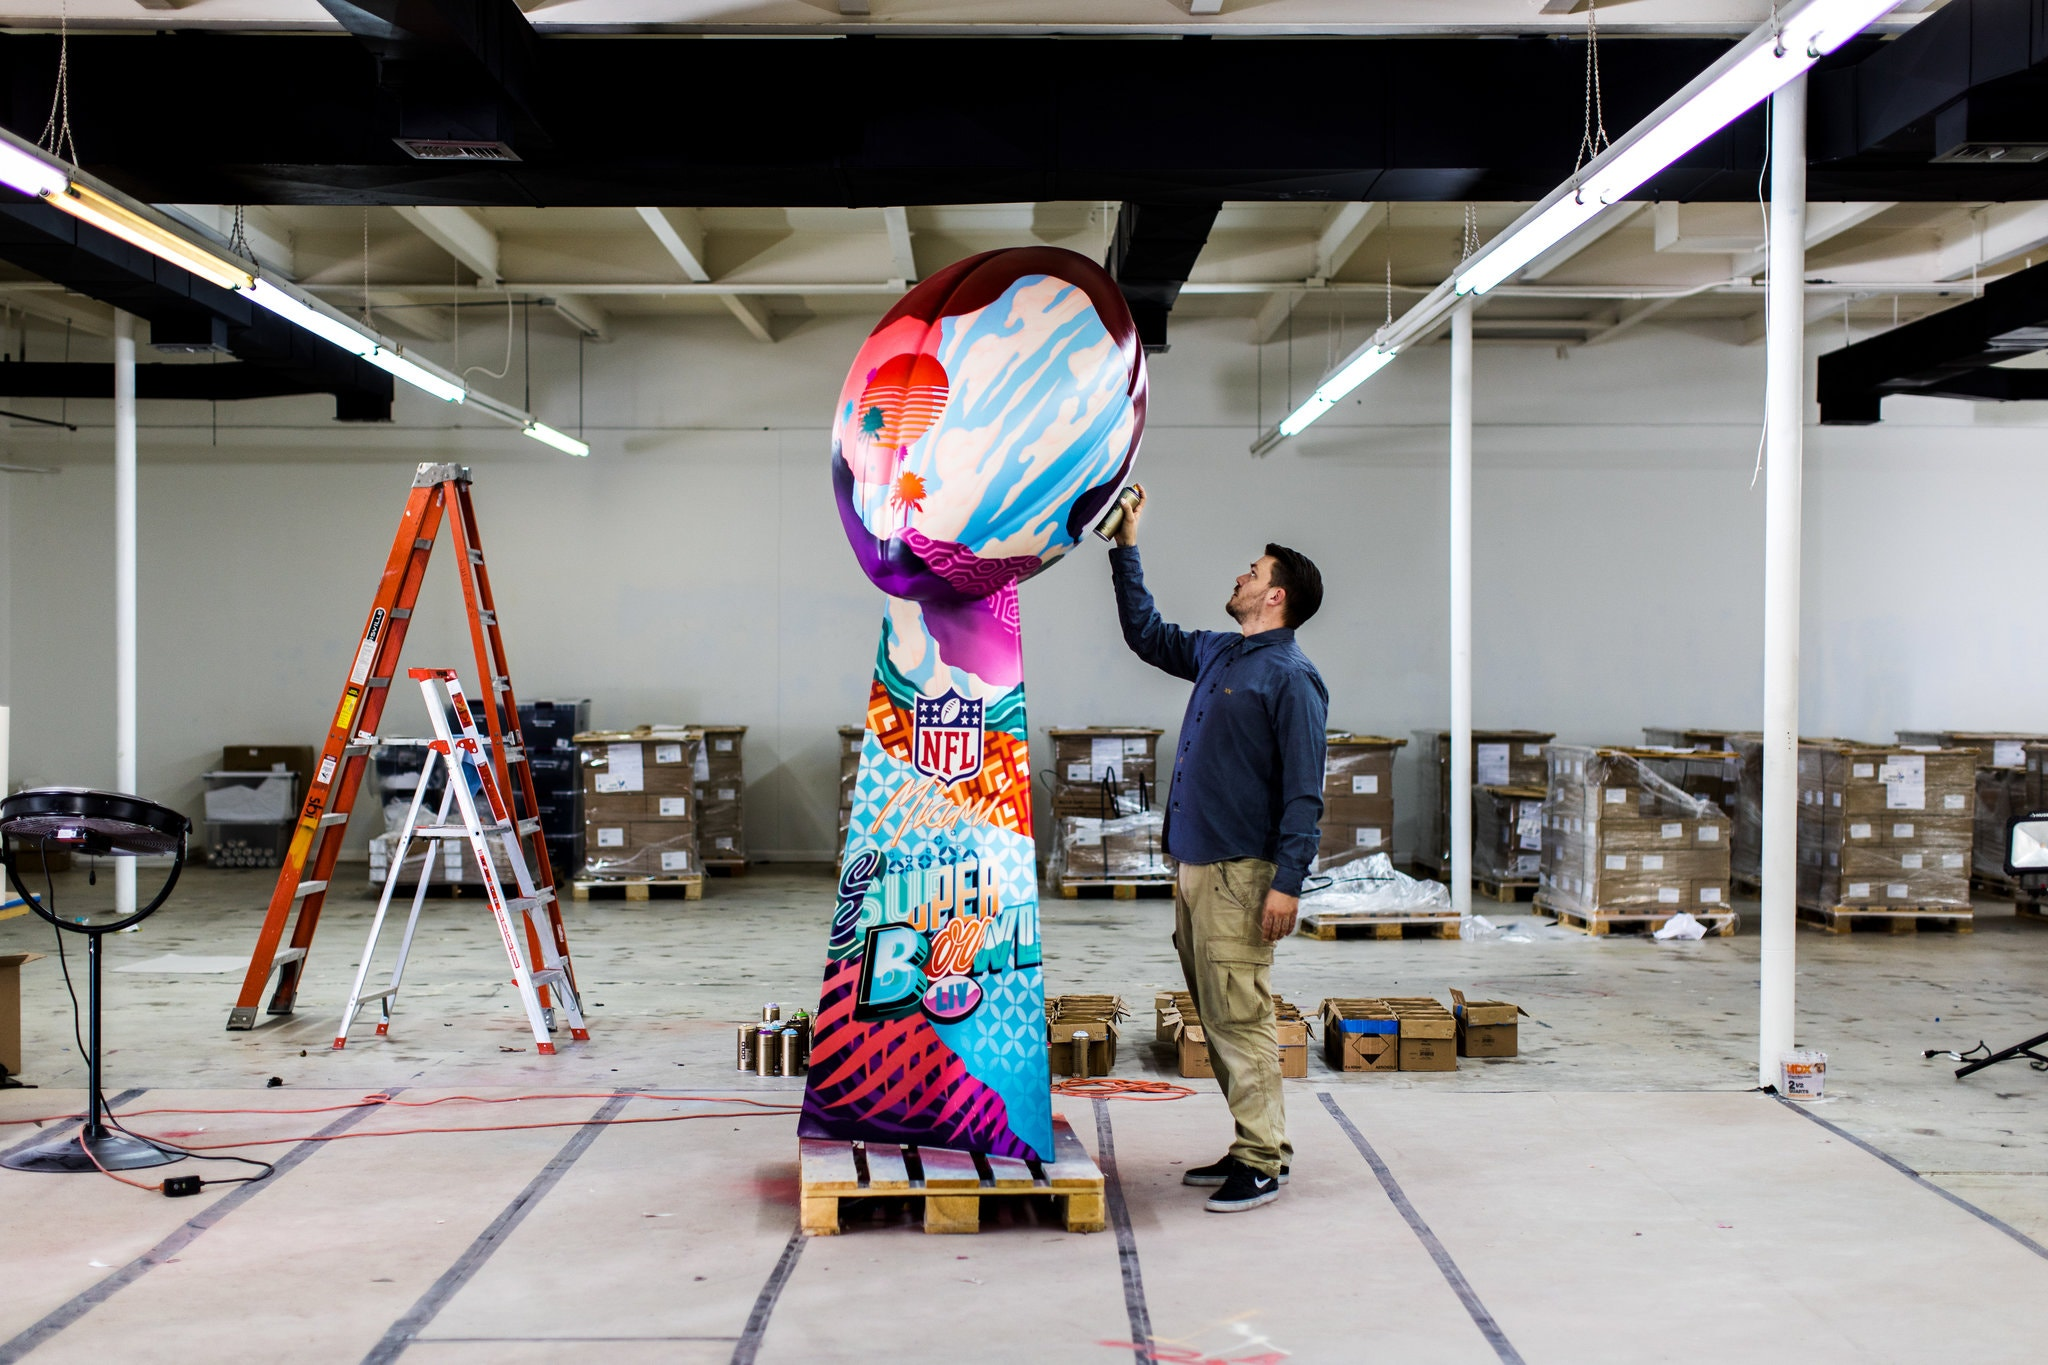 Tristan Eaton Spray Paints 9-Foot Tall Model of Lombardi Trophy for Super Bowl LIV